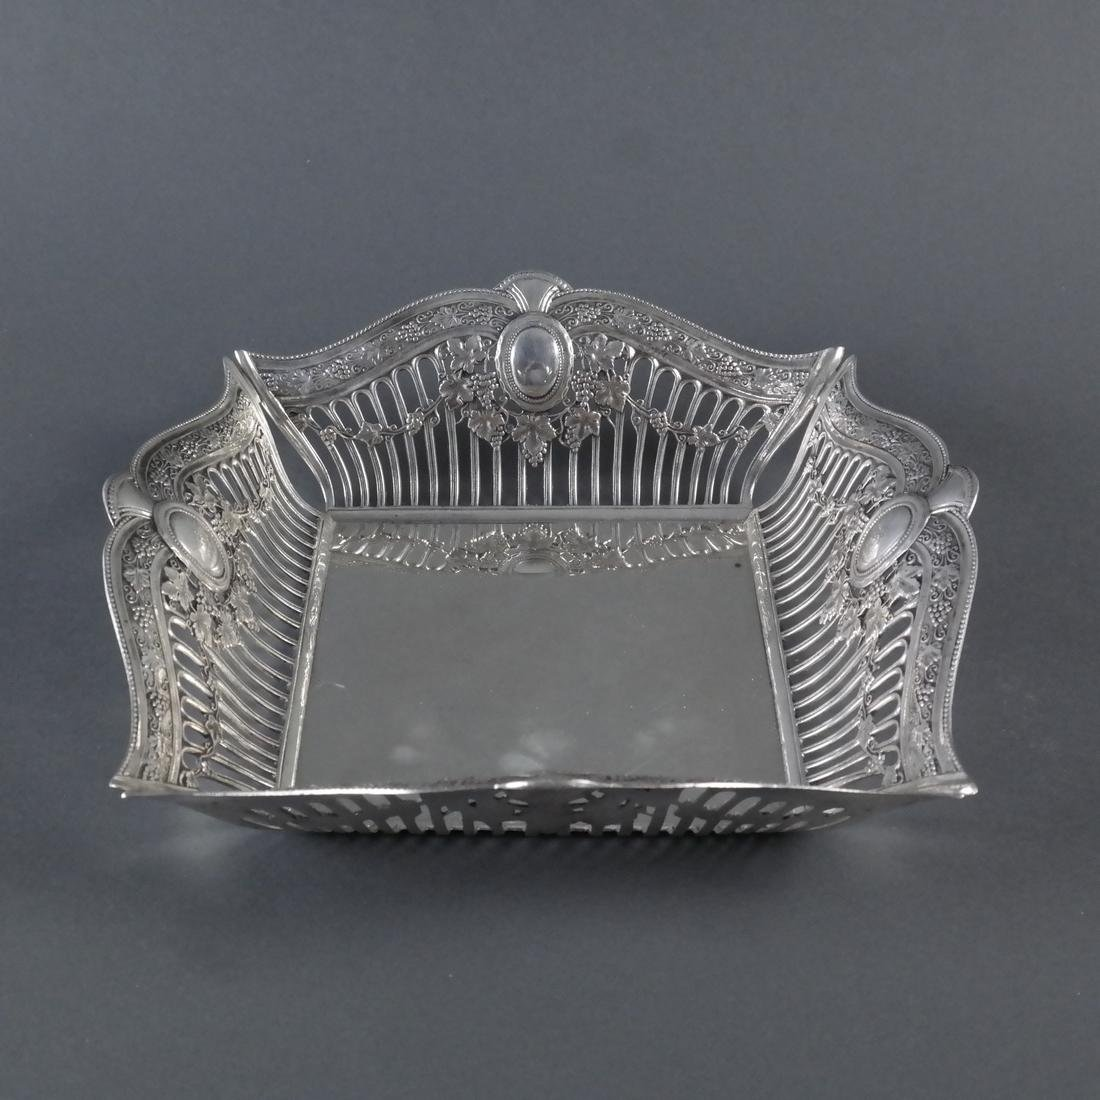 .900 Standard Silver Reticulated Basket - 2